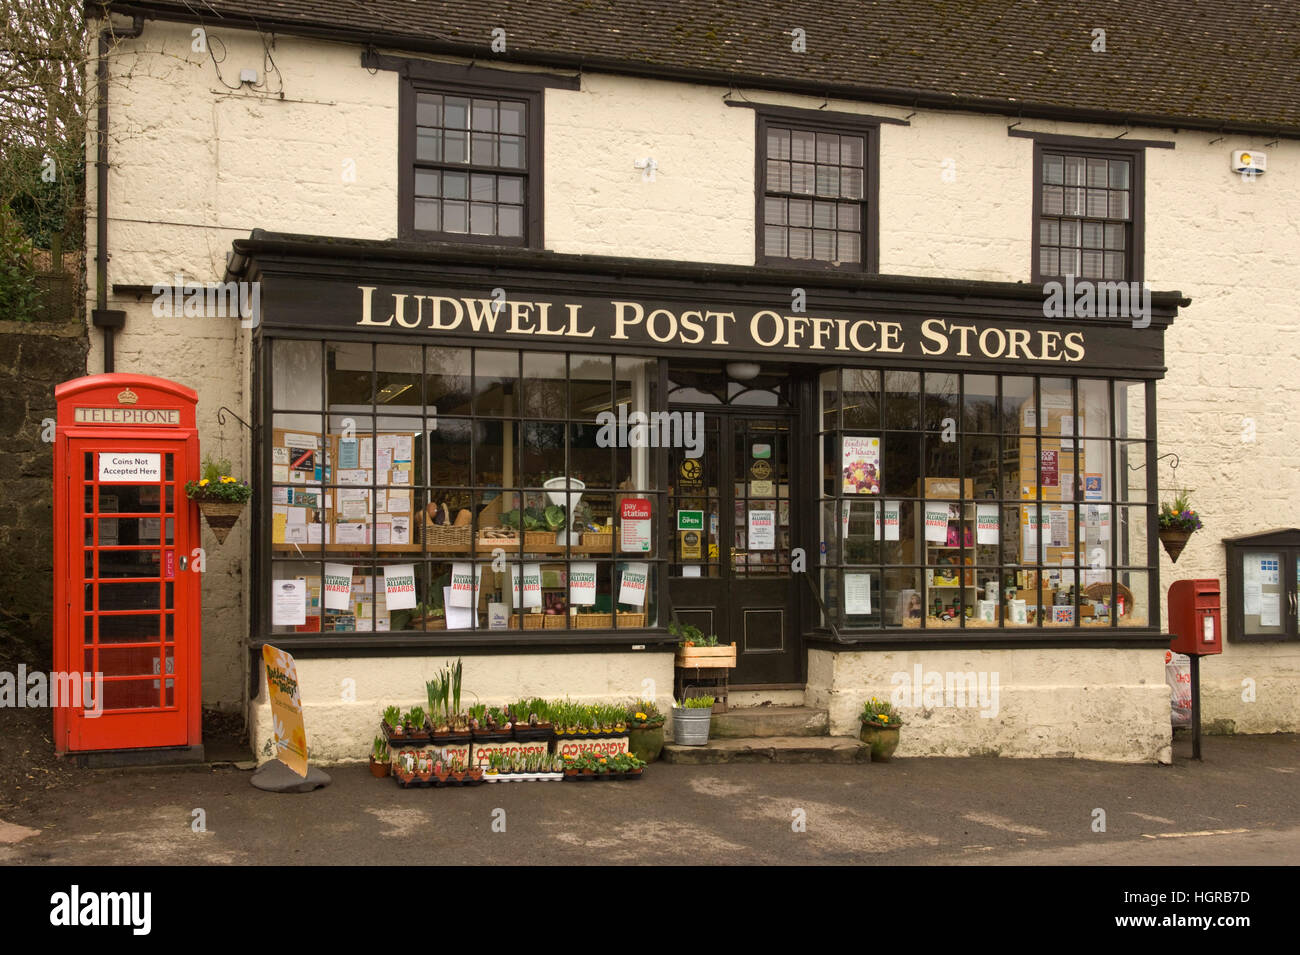 Office Stores Ludwell Post Office Stores Ludwell Wiltshire Uk Owned And Run By